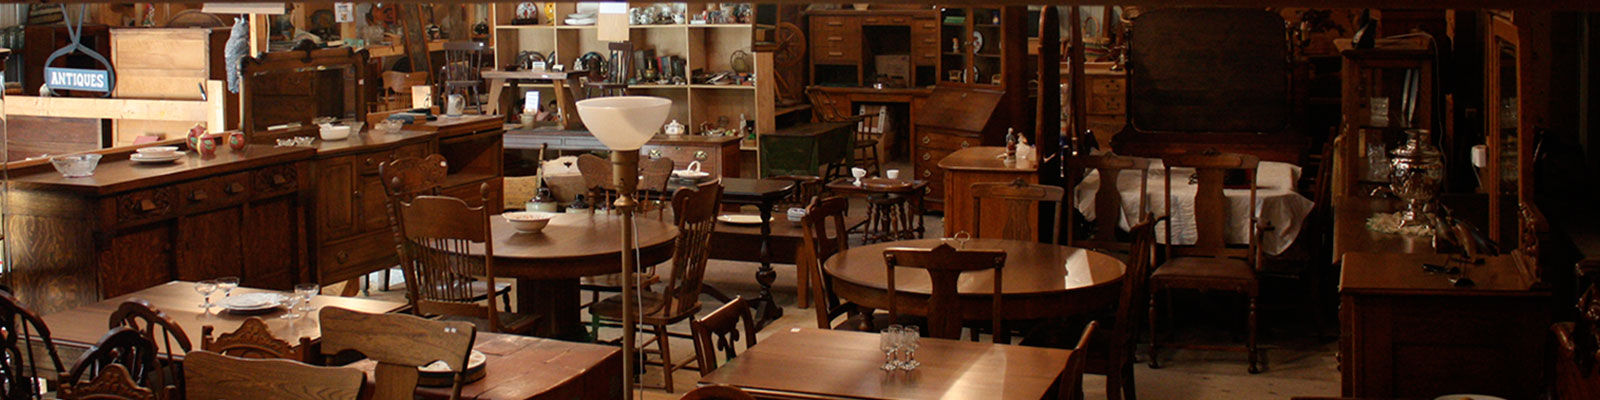 Delaquis Antiques Showroom - Antiques, Collectibles and Vintage Furniture